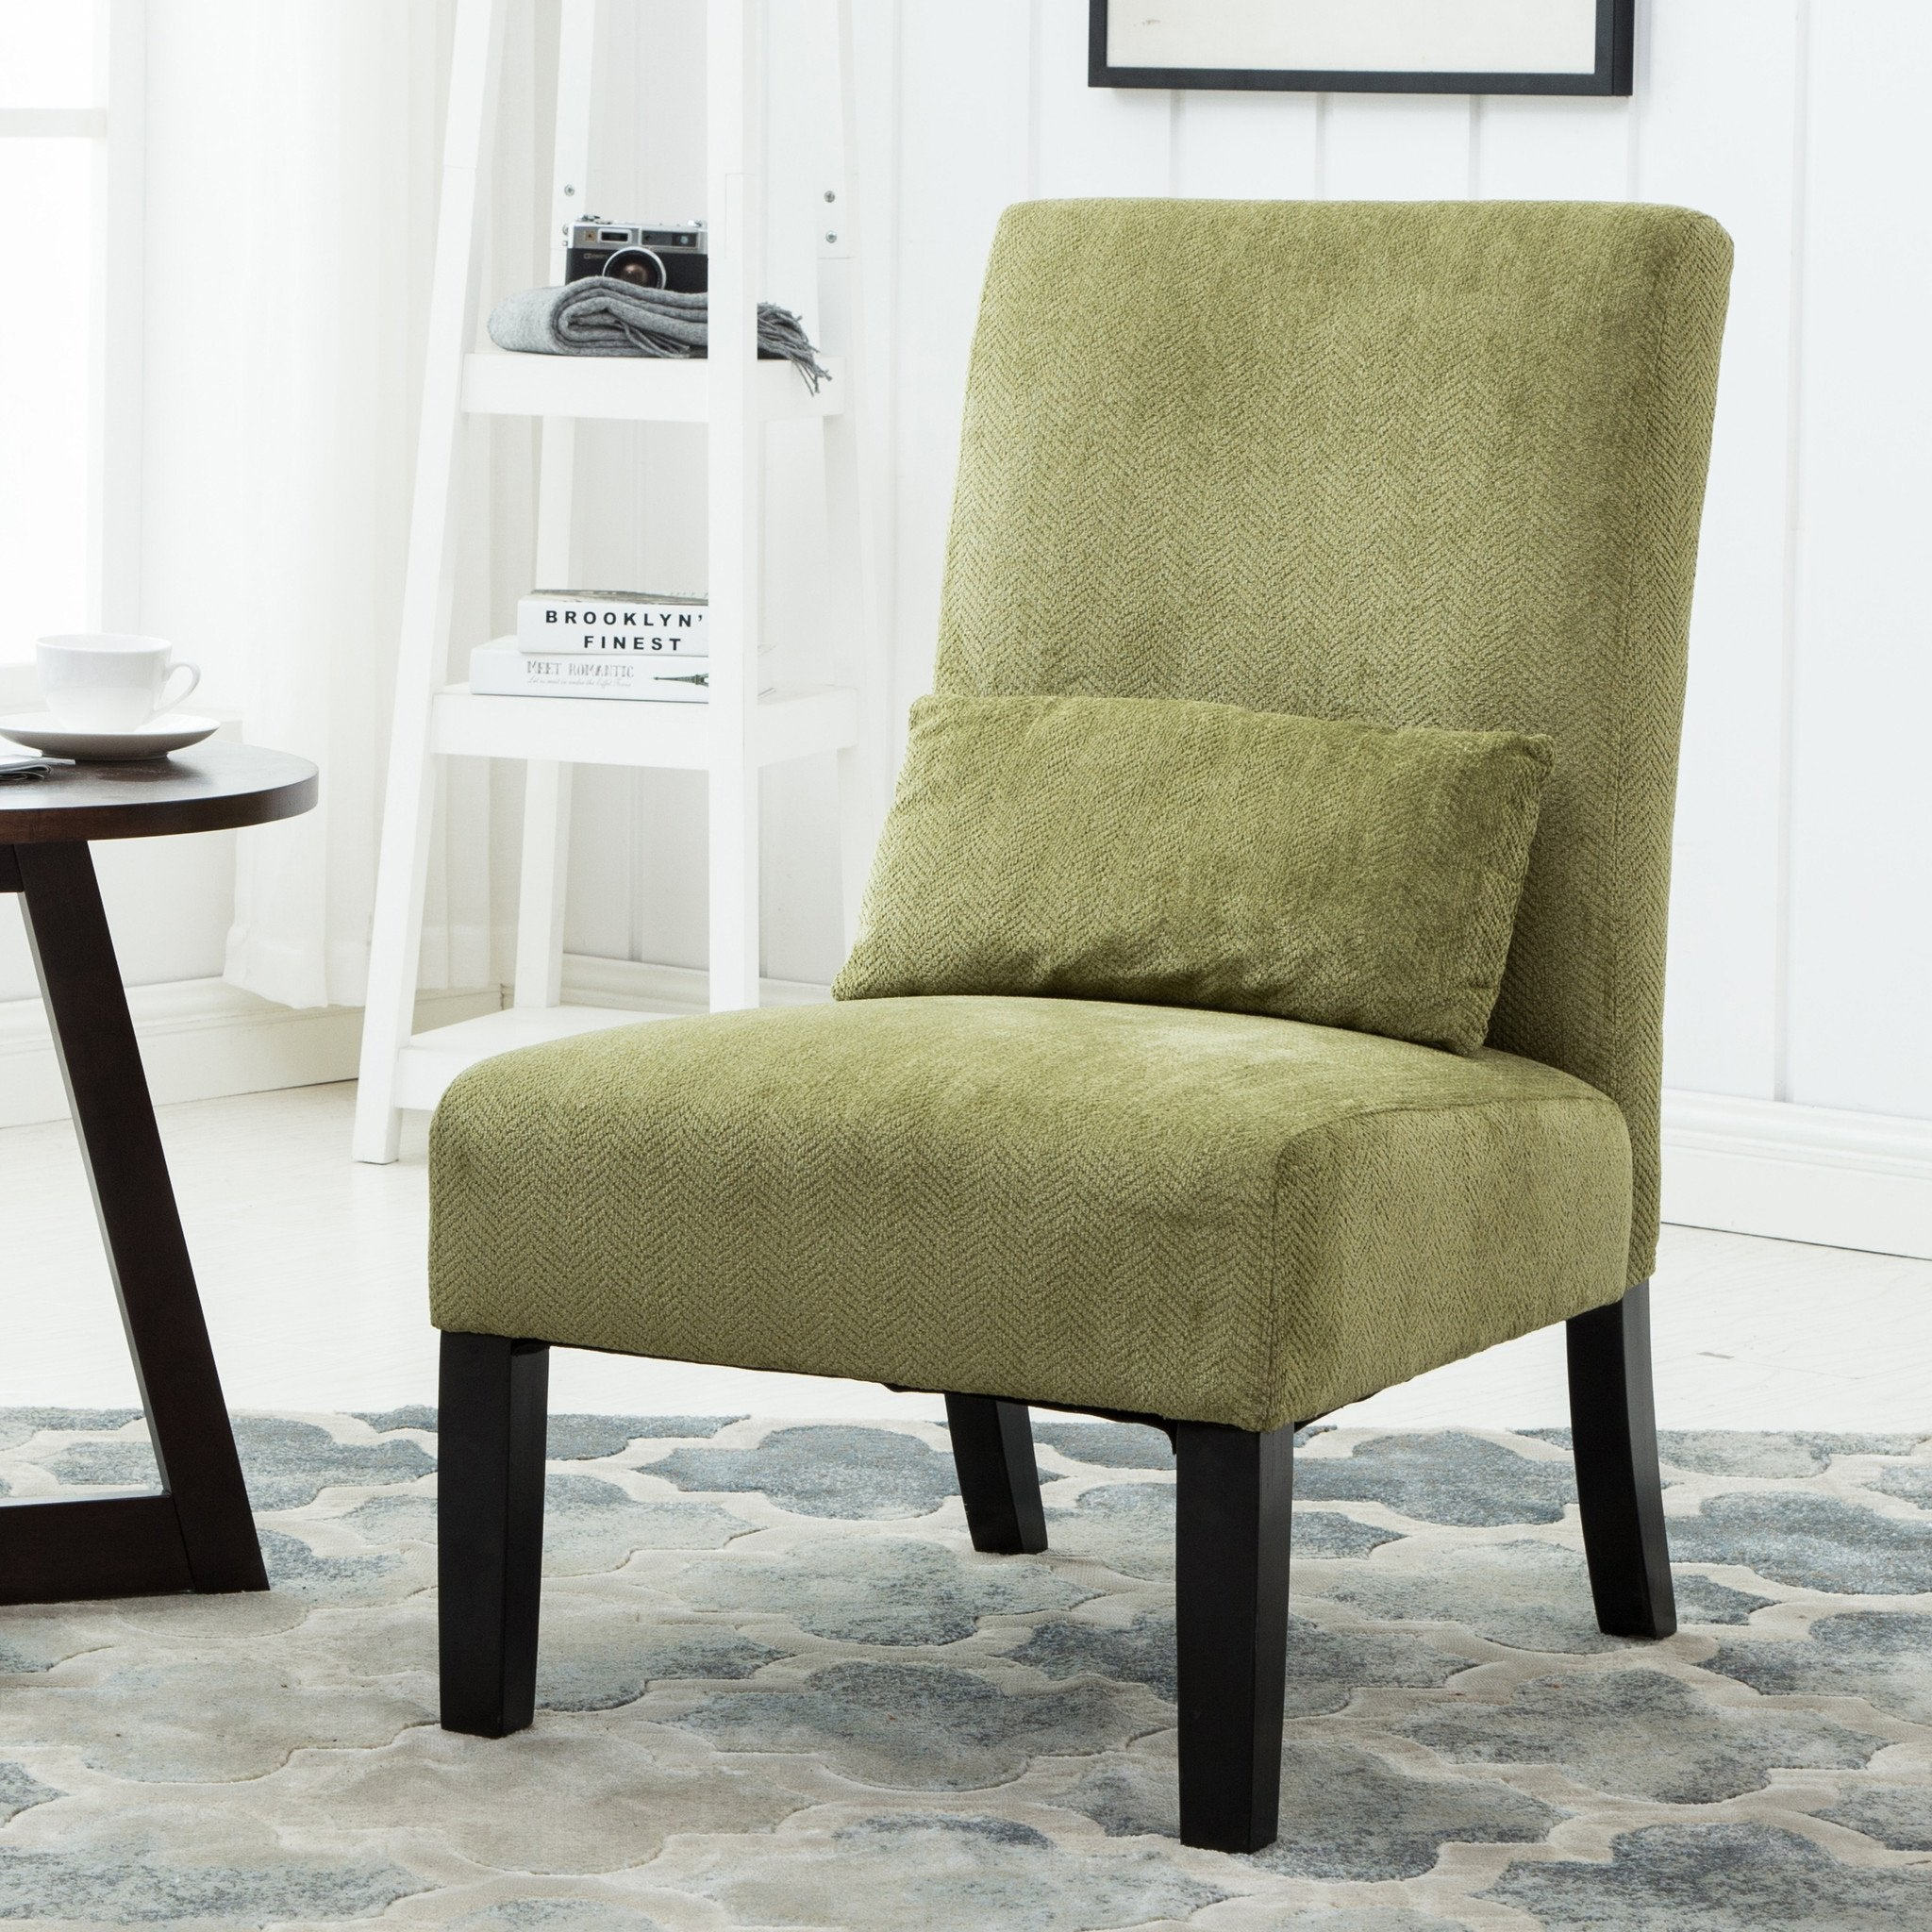 Pisano Green chenille Fabric Armless Contemporary Dining Chair with Pillow